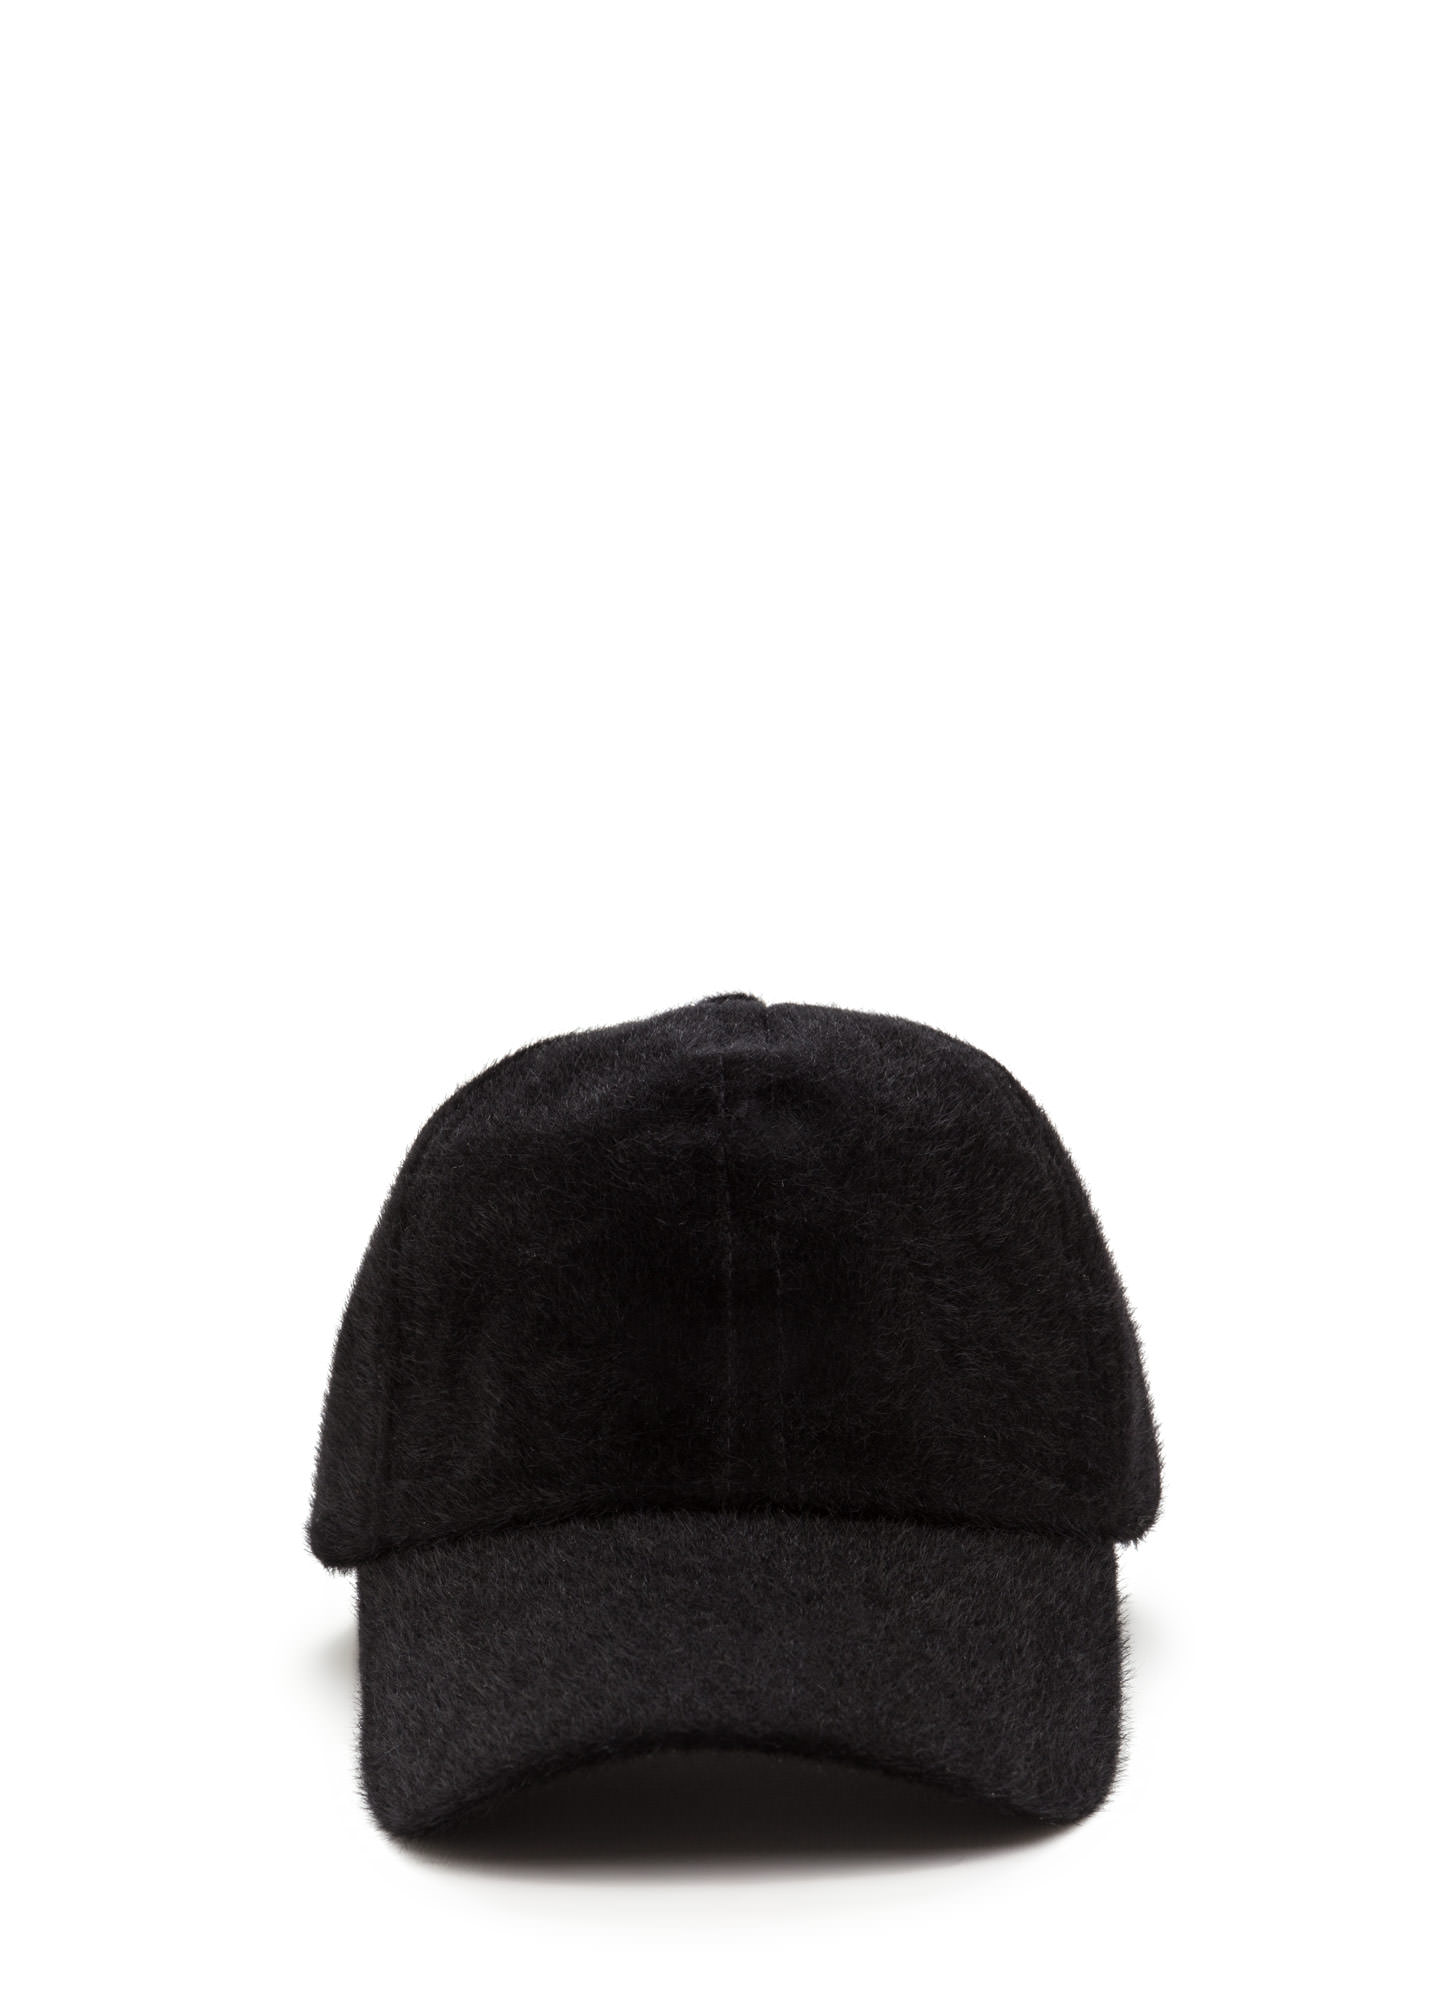 Keep Your Cool Faux Calf Hair Cap BLACK